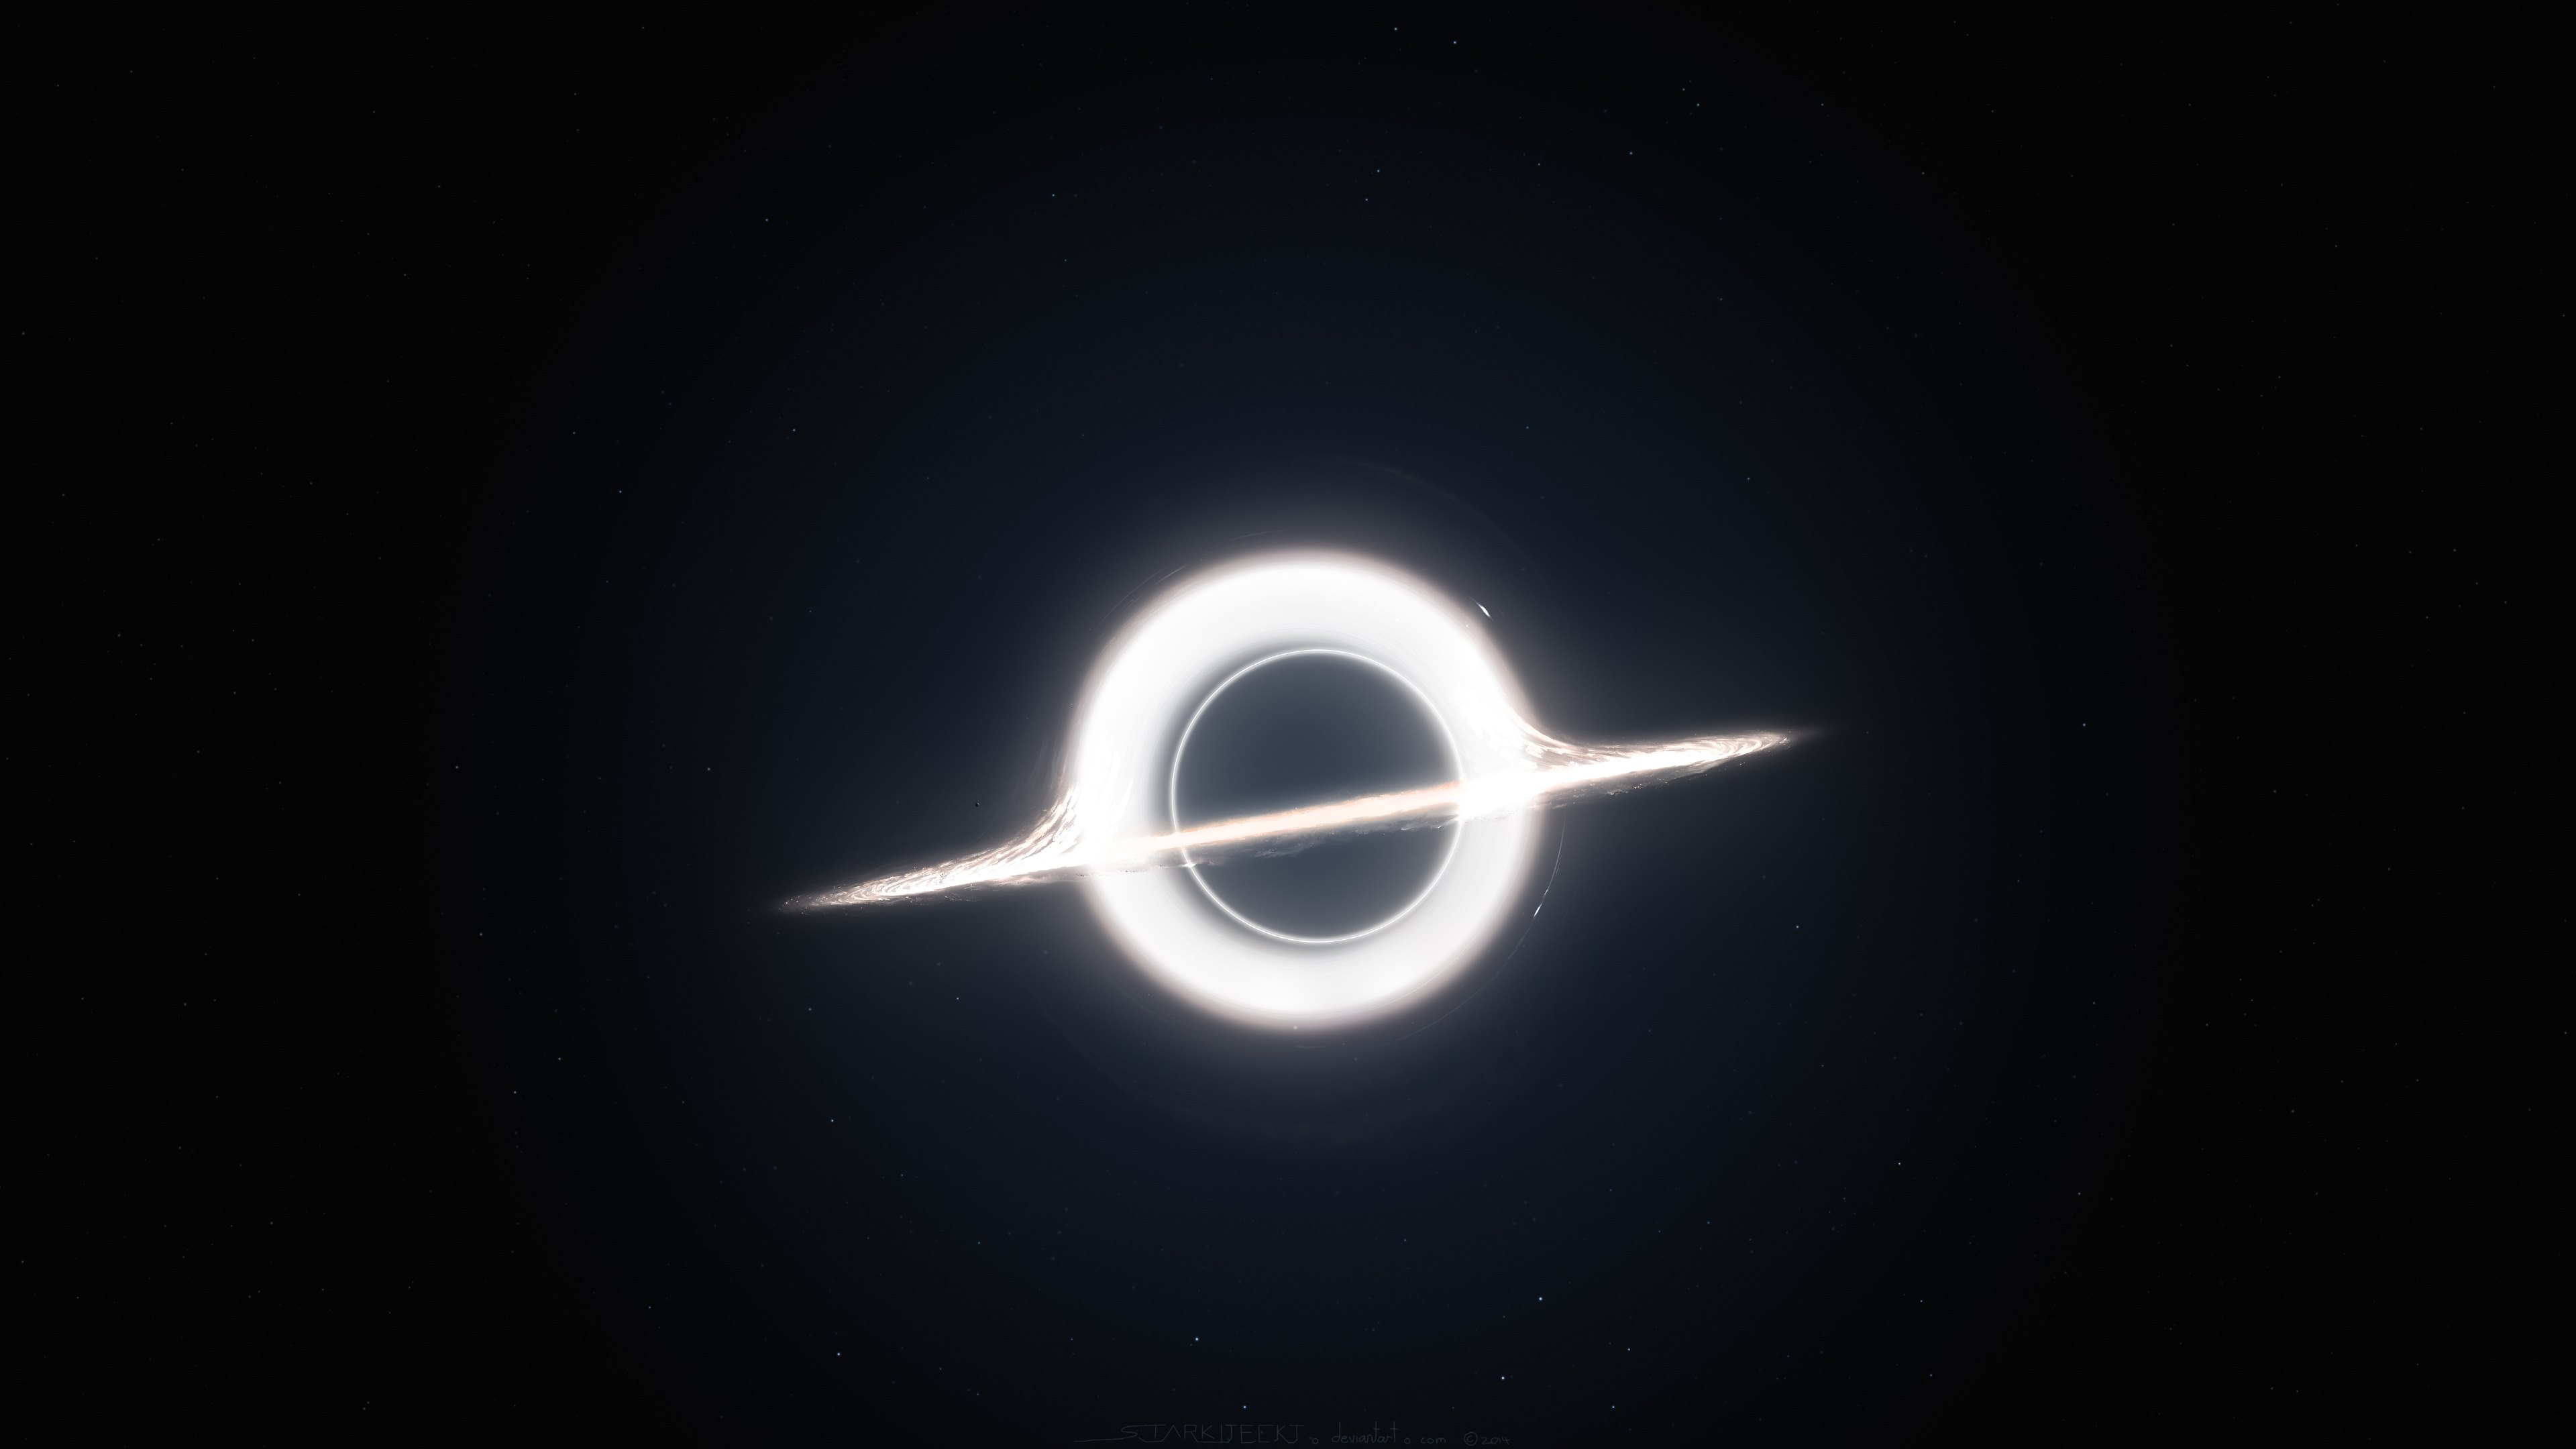 Gargantua inspired by Interstellar movie Wallpapers HD Wallpapers 3840x2160